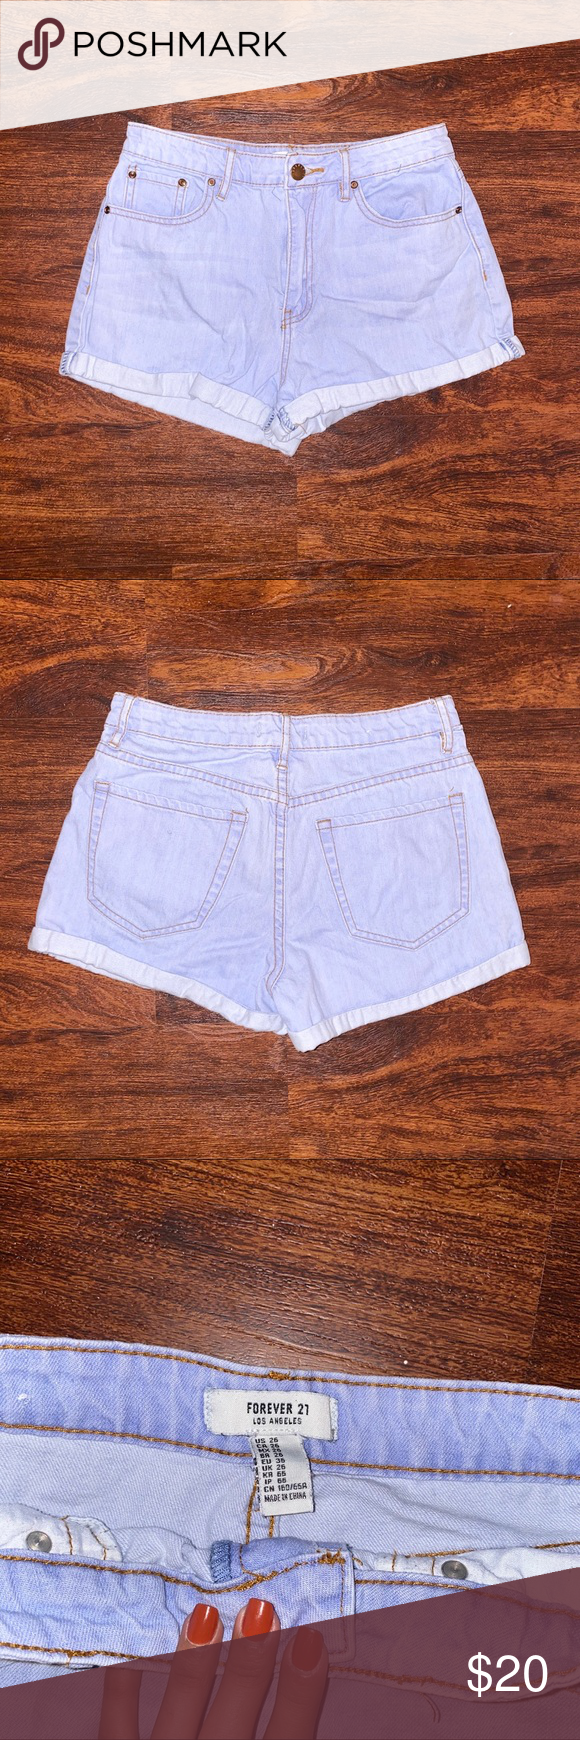 Forever21 Light Blue High Waisted Shorts. Pair it with your favorite top and shoes.  • Color: Light Blue • Size: US 26 Forever 21 Shorts #lightblueshorts